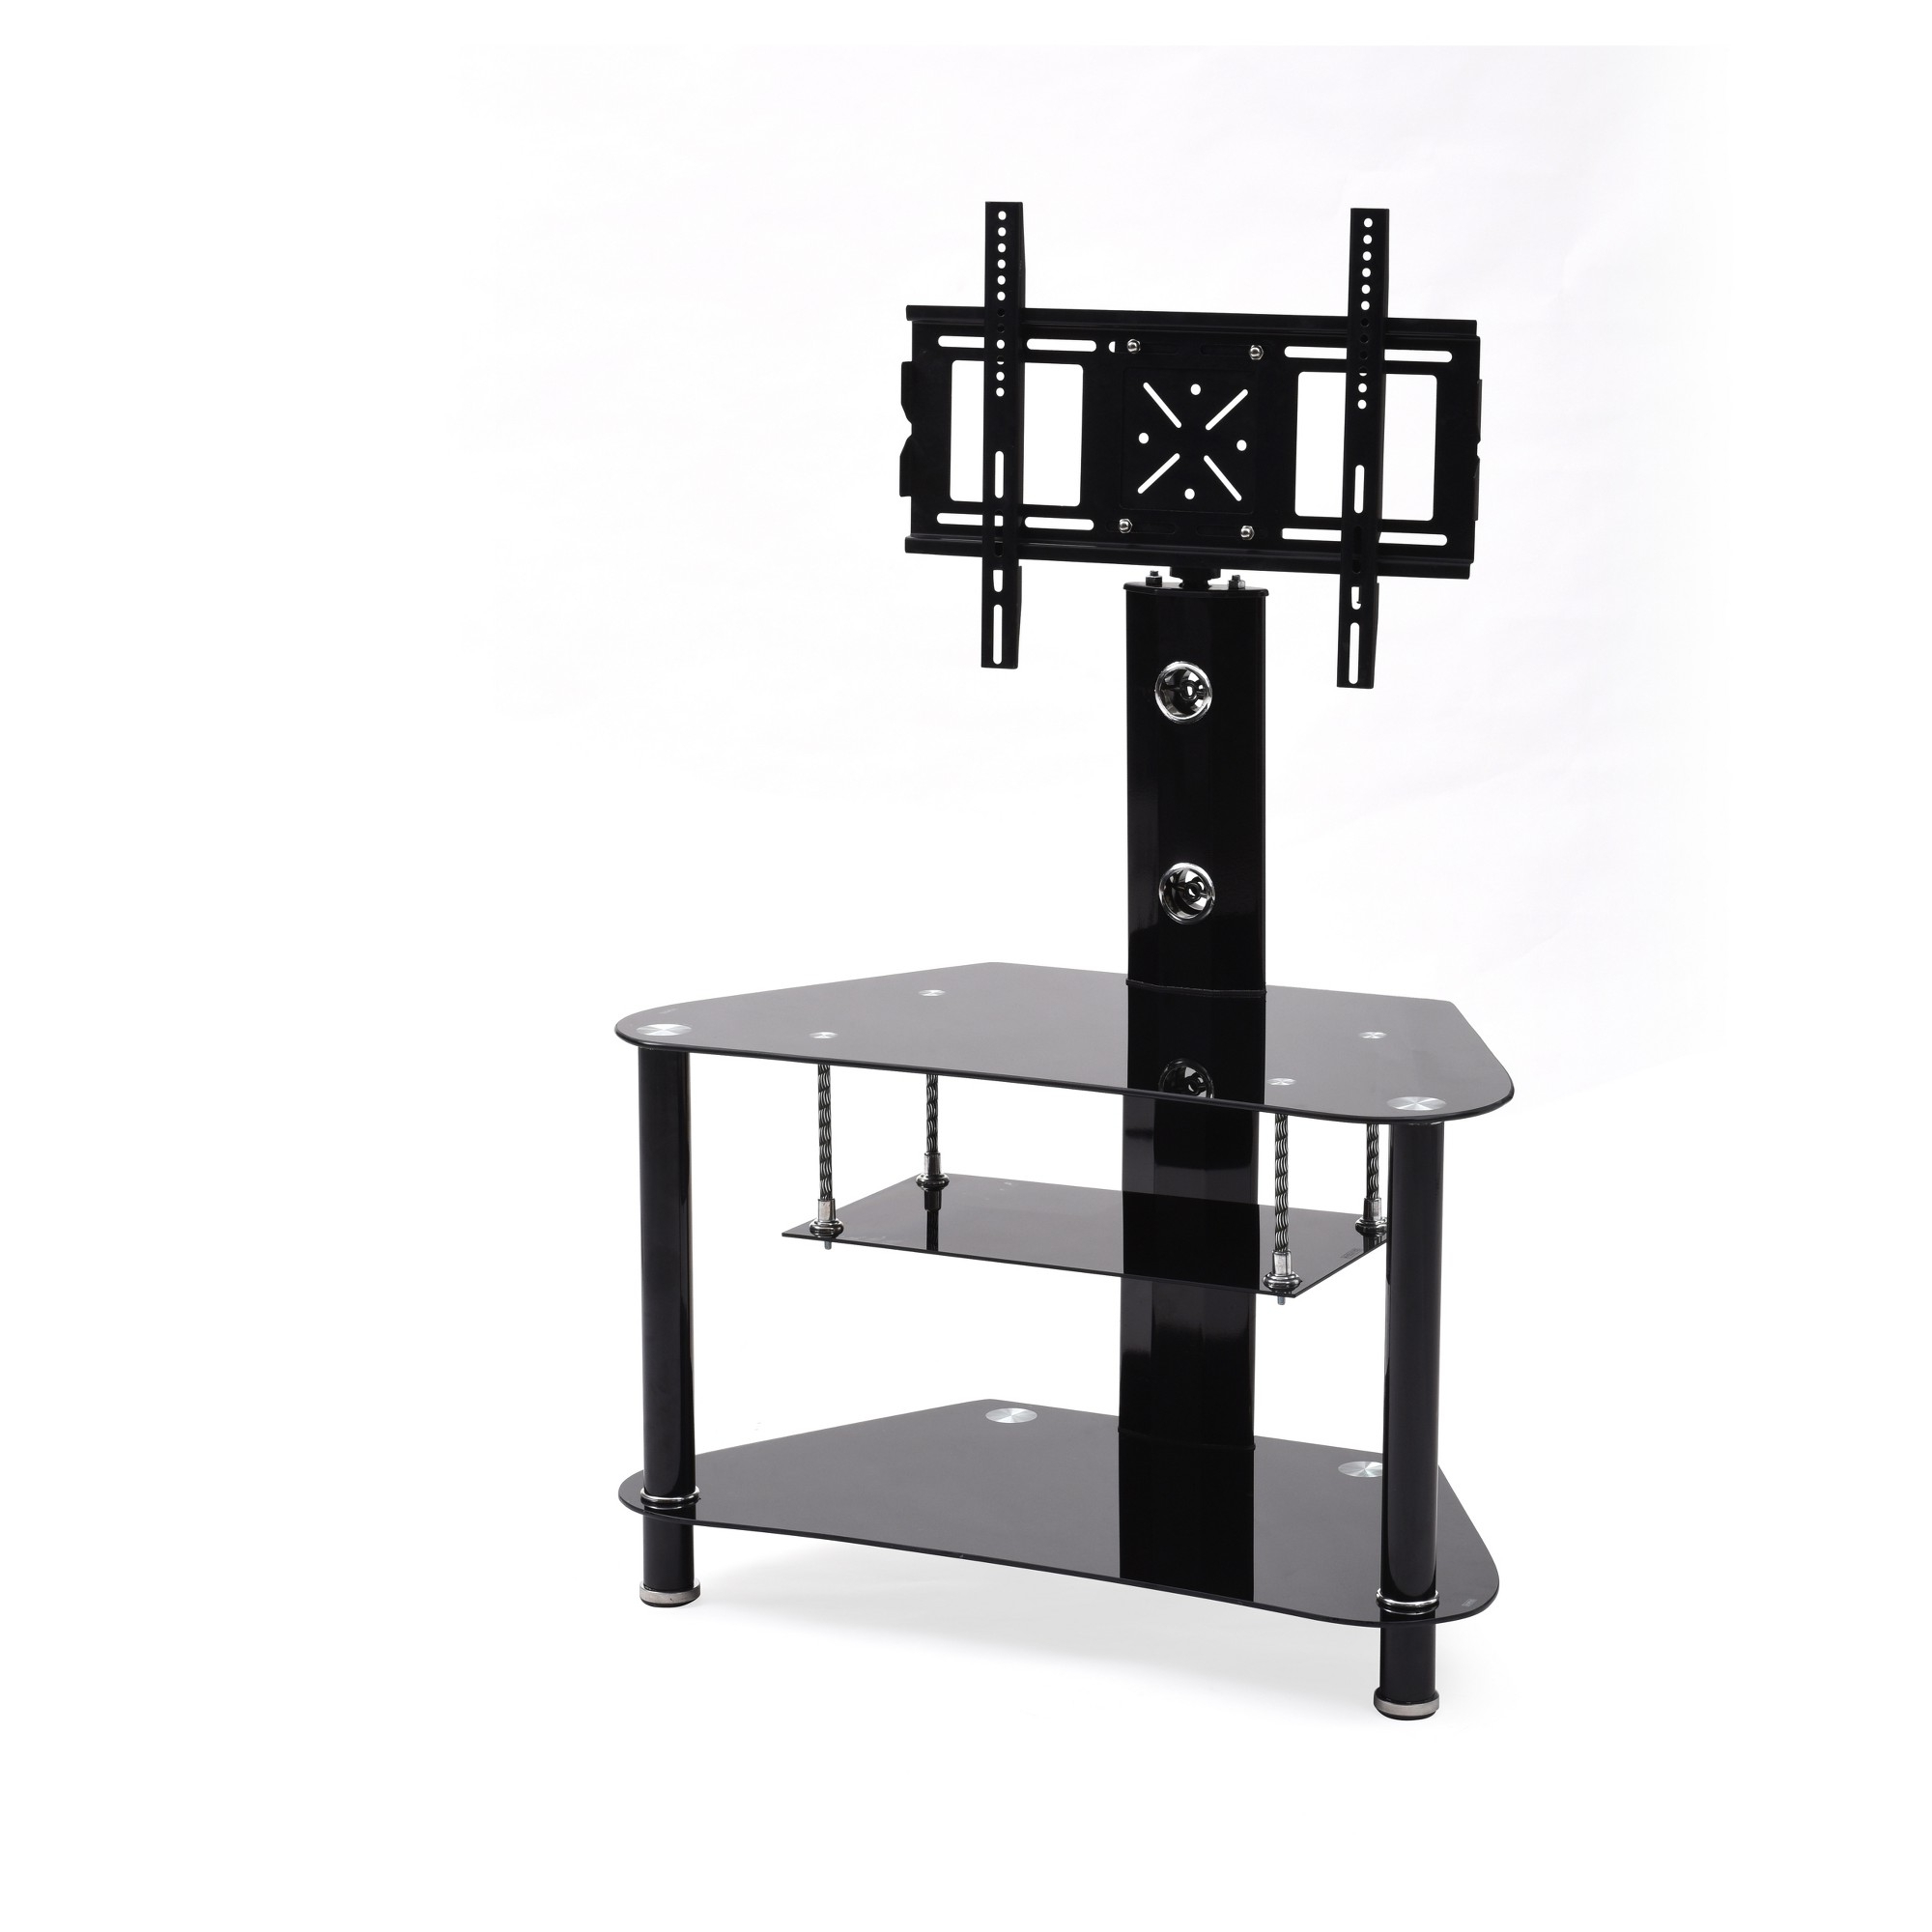 Swivel Black Glass Tv Stands Throughout Preferred 3 Shelf Glass Tv Stand With Swiveling Mount Black 36 – Hodedah (View 16 of 20)